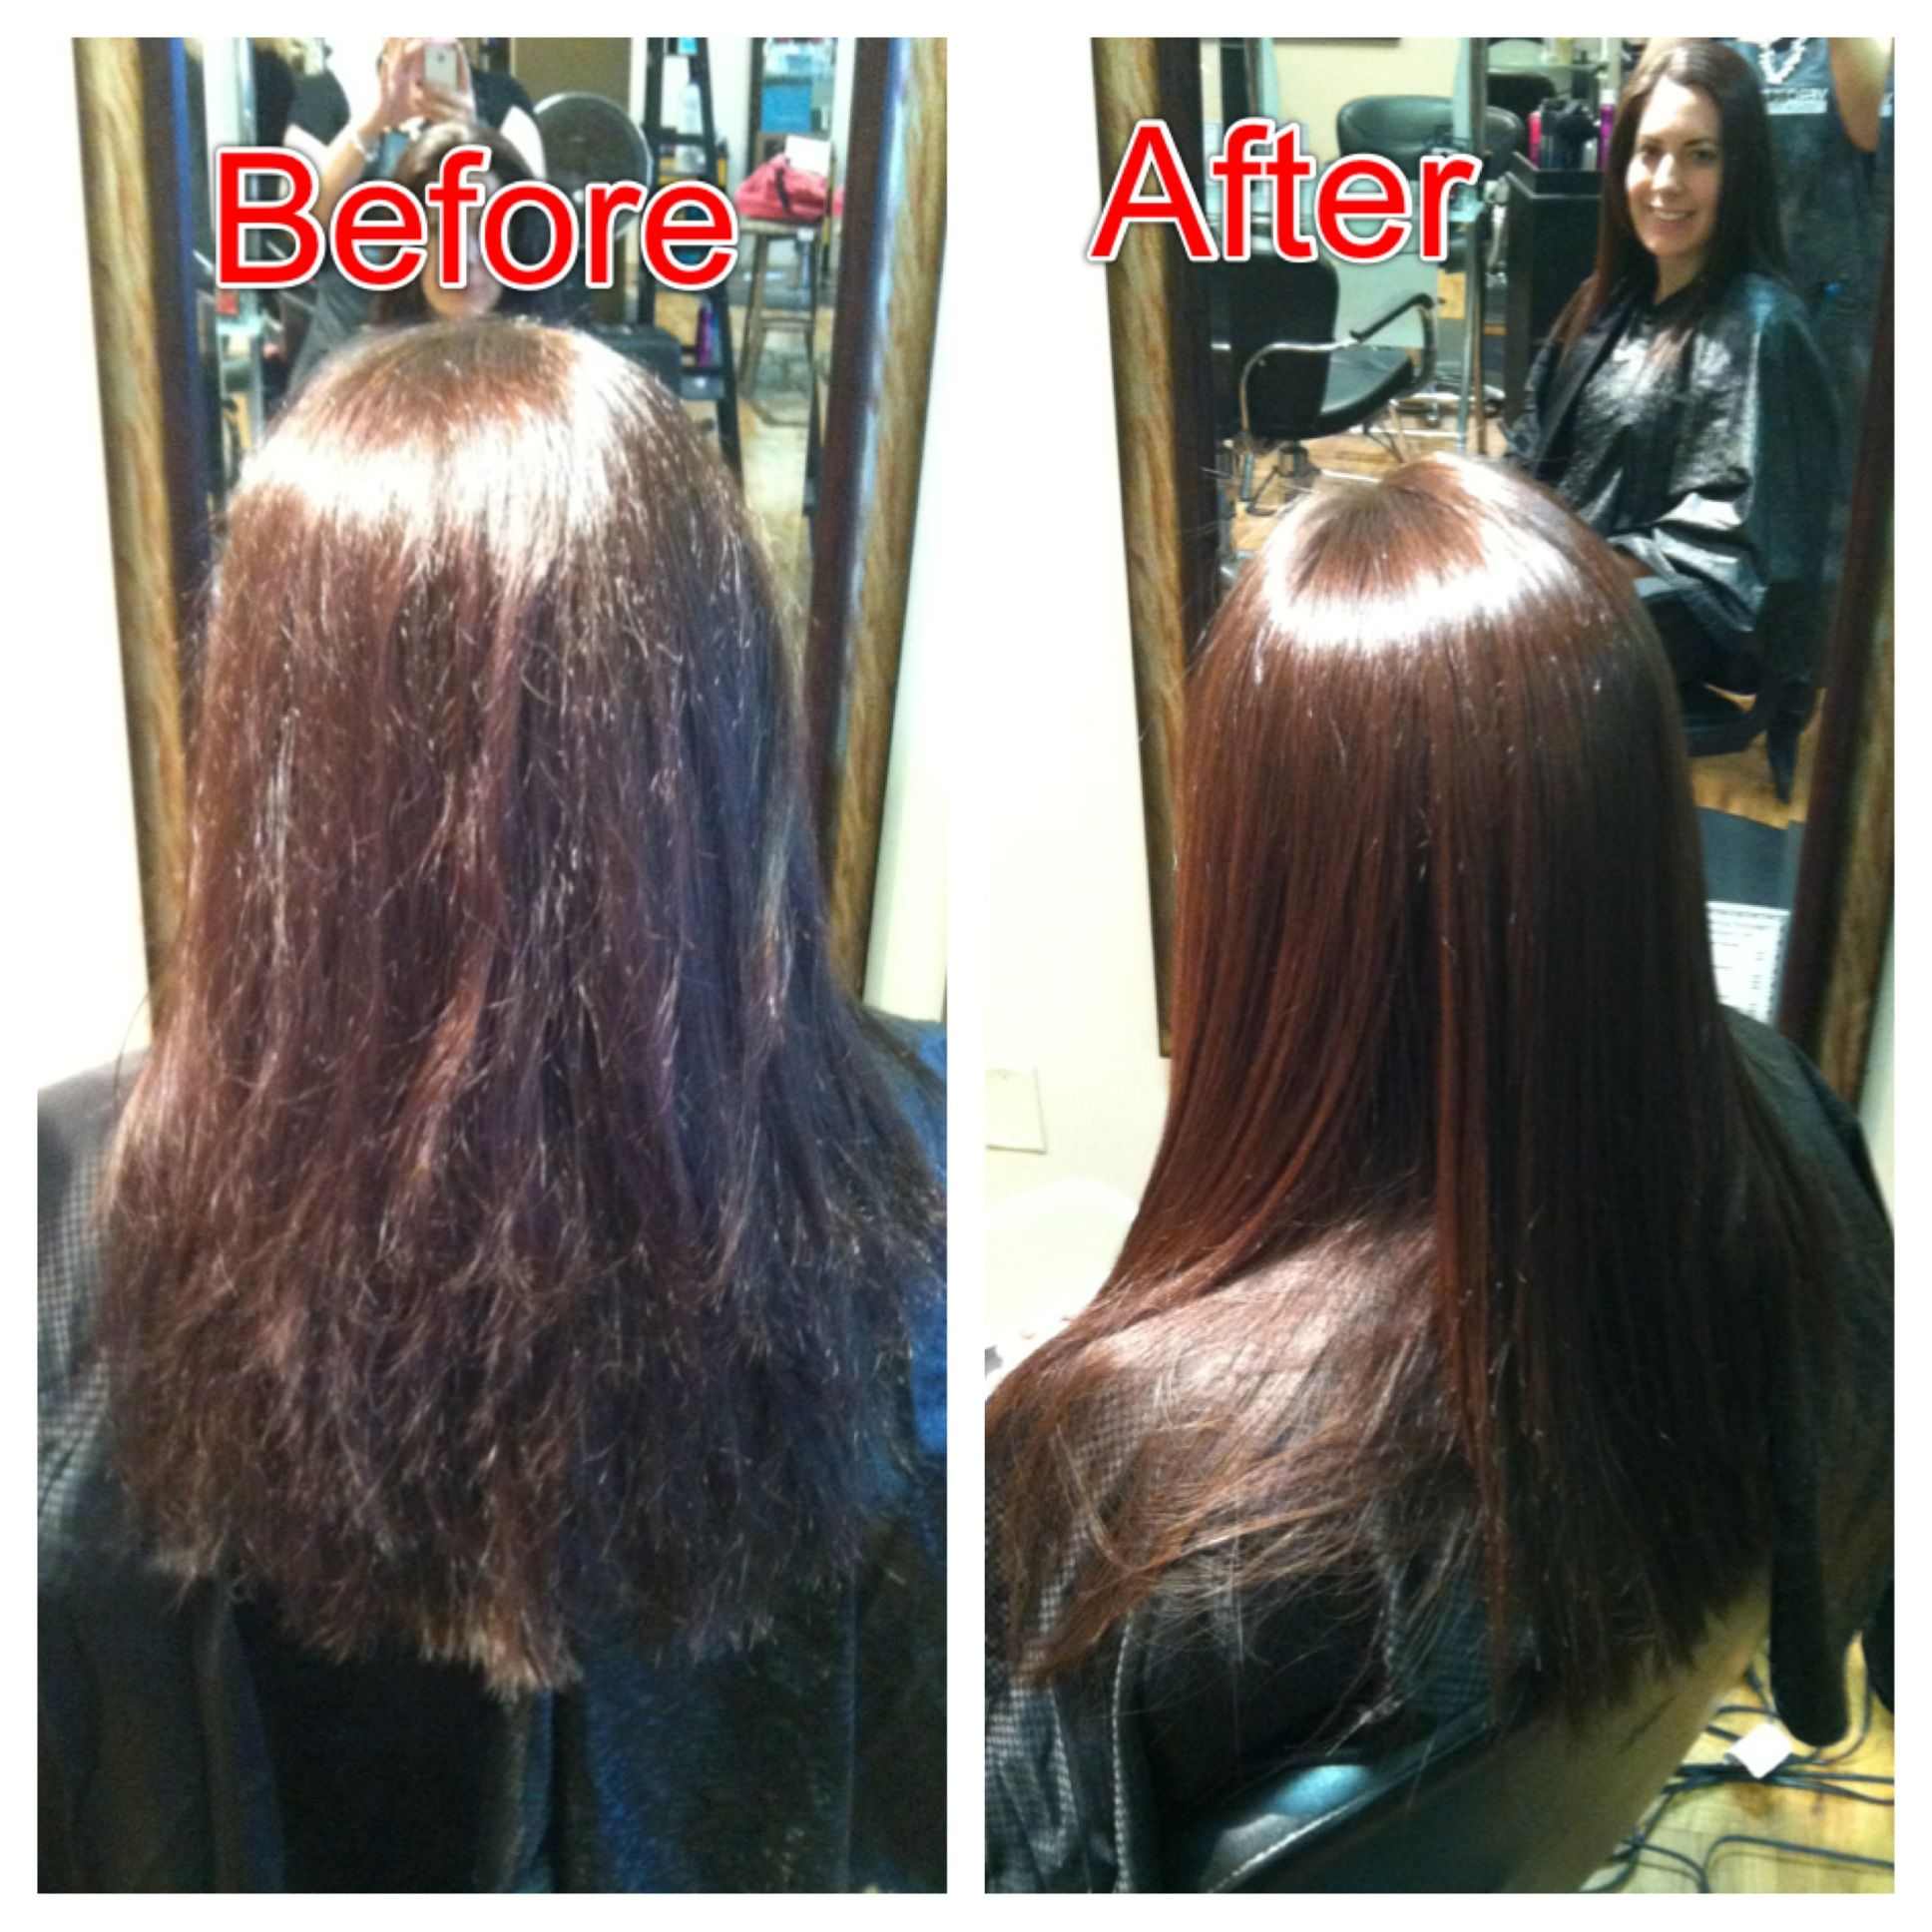 Before and after a keratin treatment | Random | Pinterest ...